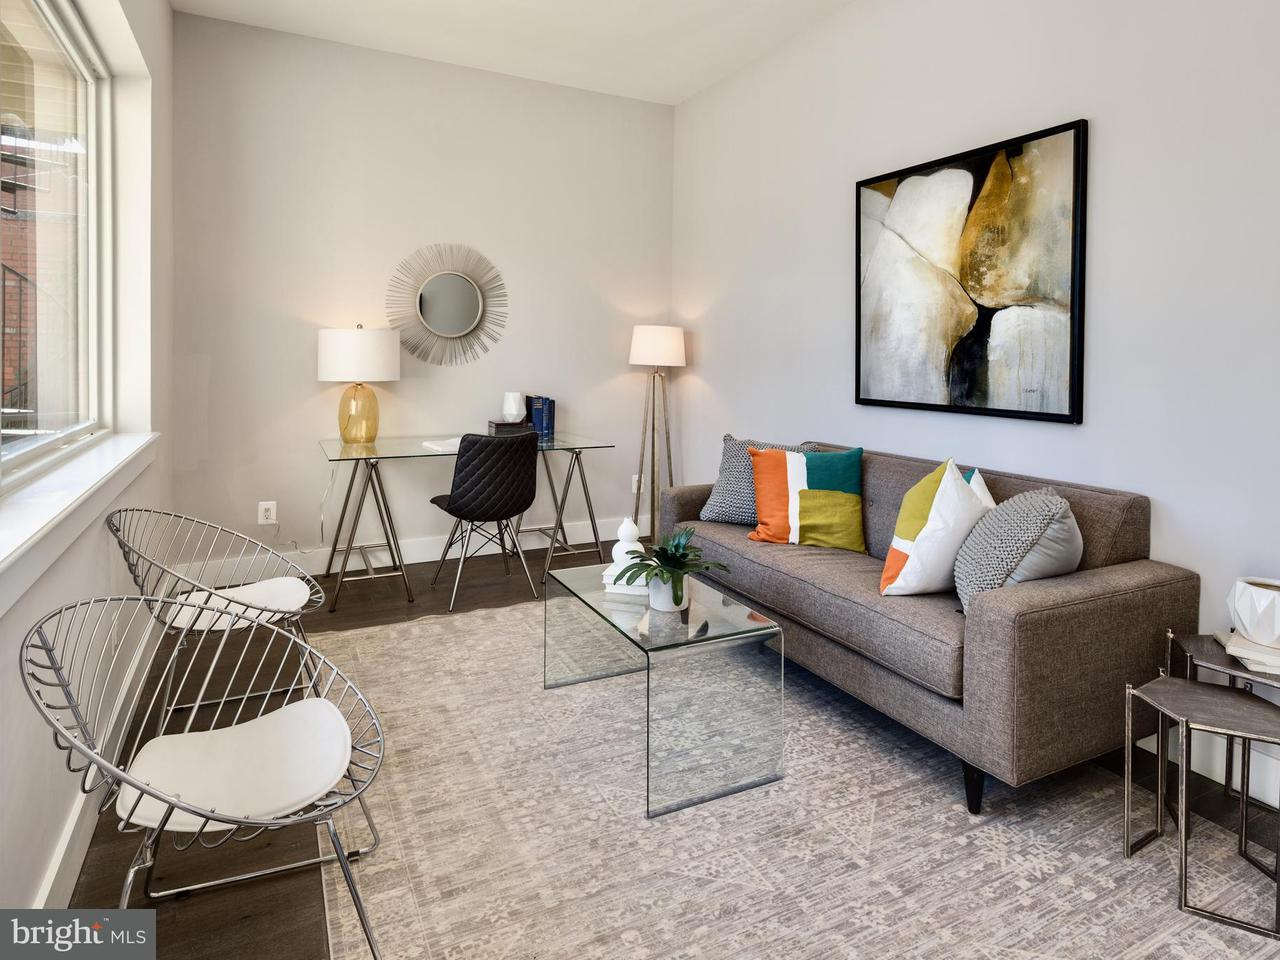 Additional photo for property listing at 3227 Sherman Ave Nw #One 3227 Sherman Ave Nw #One Washington, District Of Columbia 20010 United States